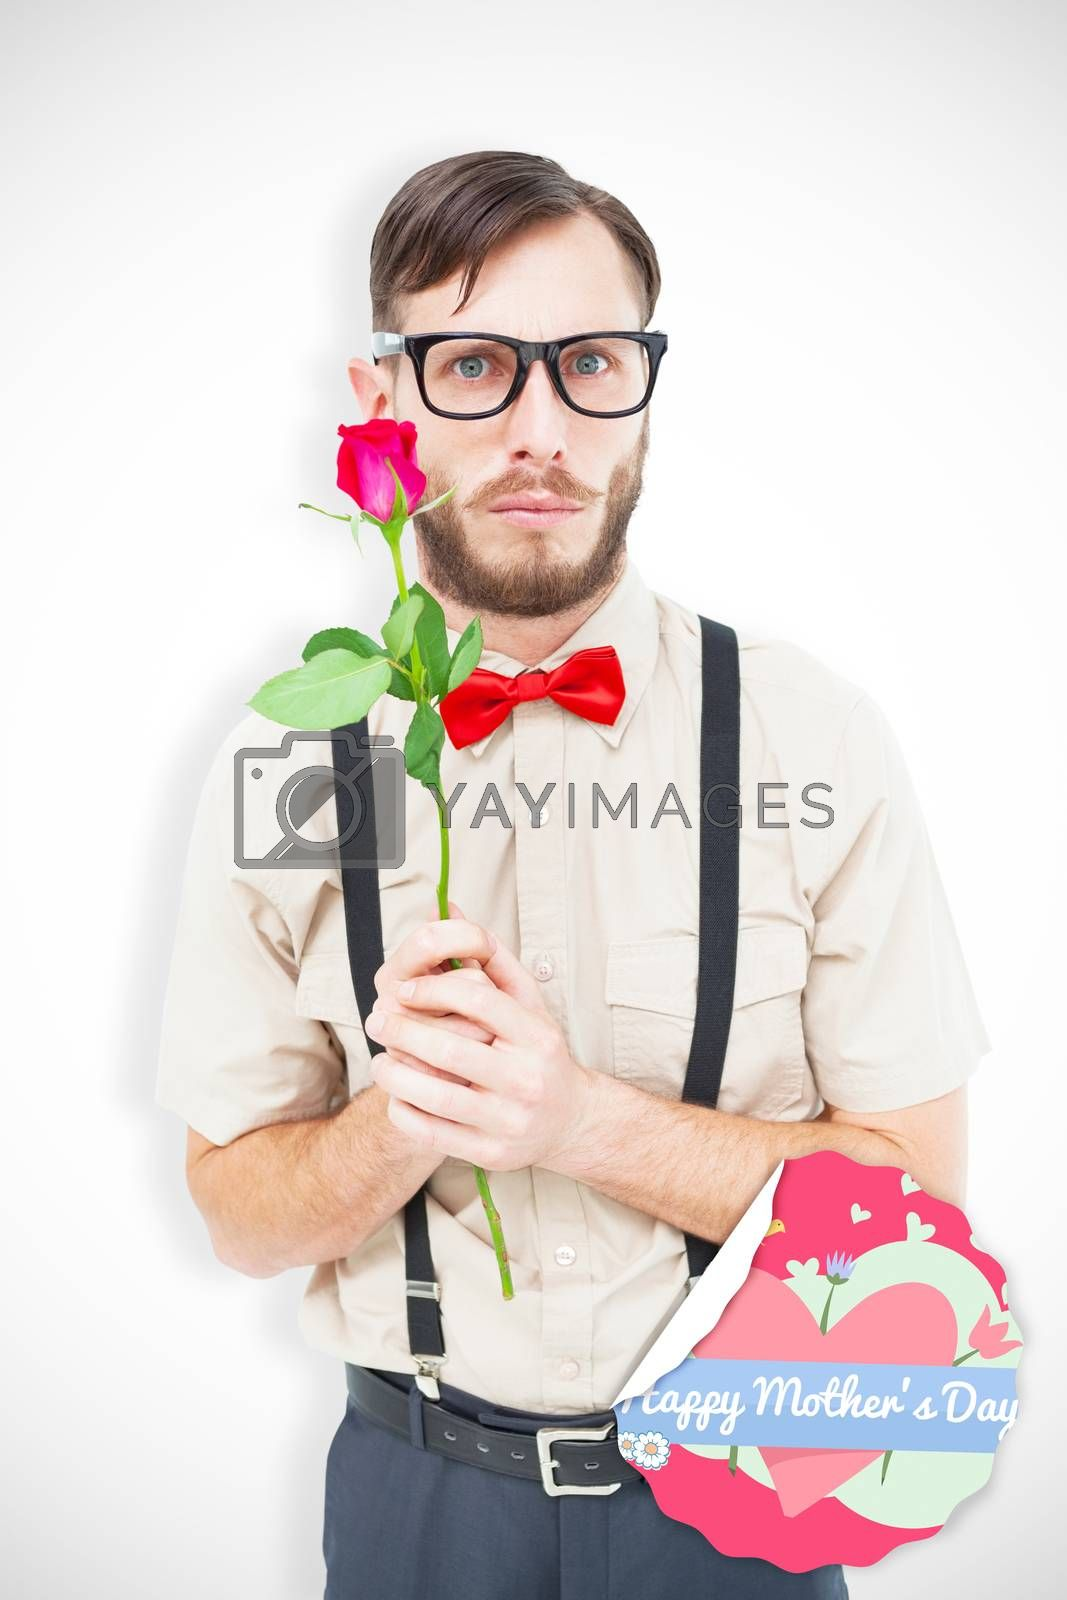 Geeky hipster offering a rose against mothers day greeting